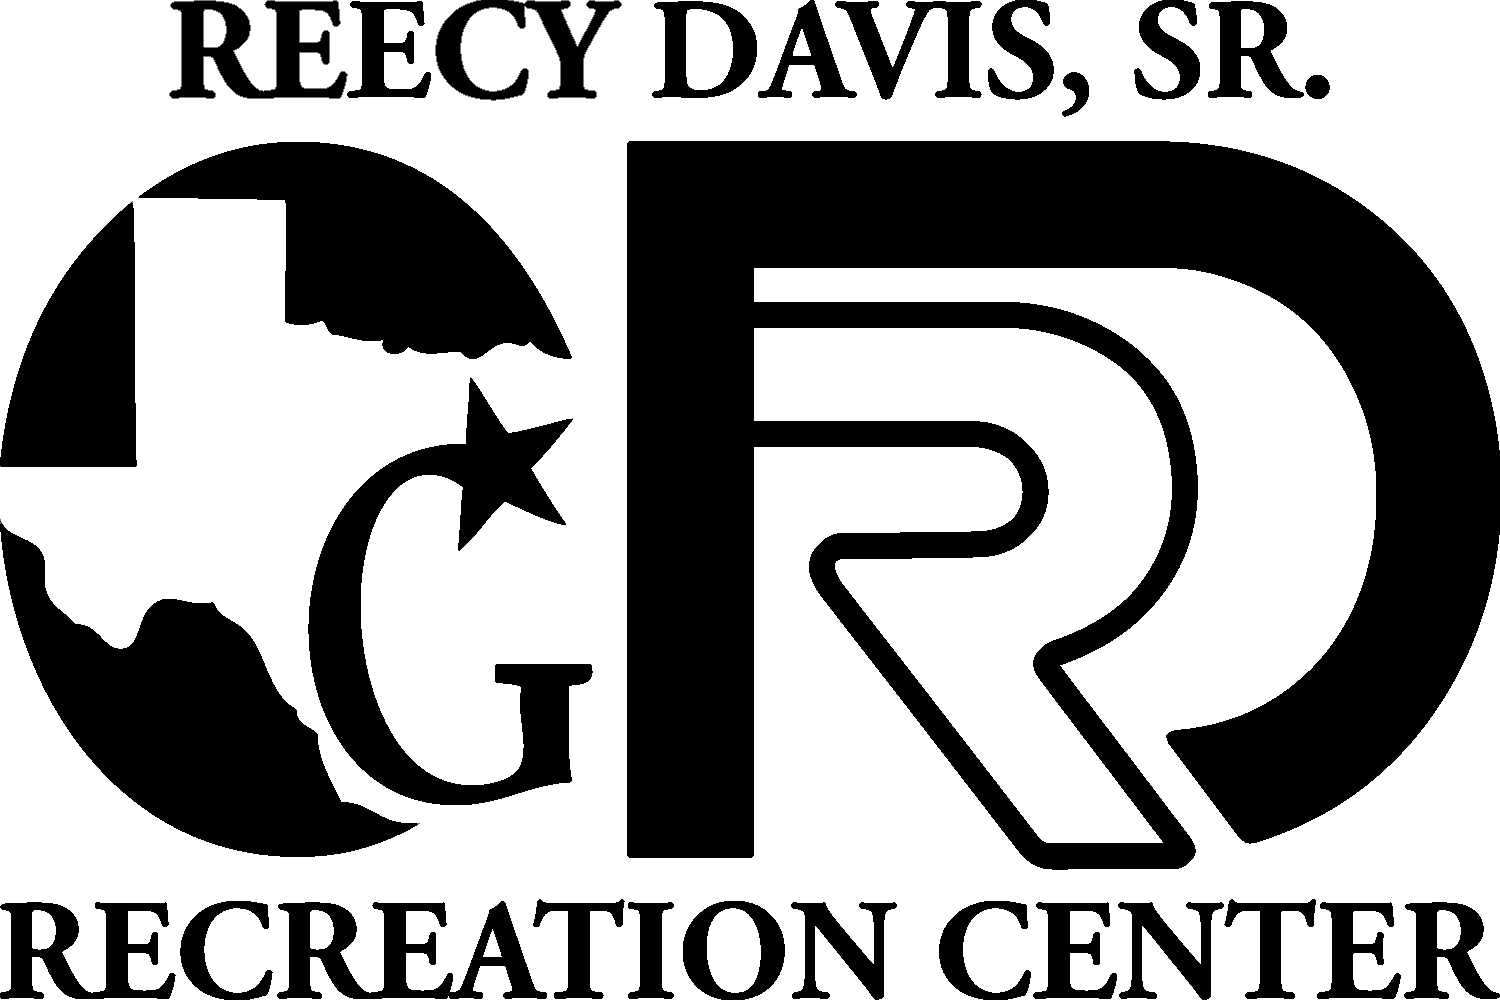 Final 2020 Reecy Davis Logo